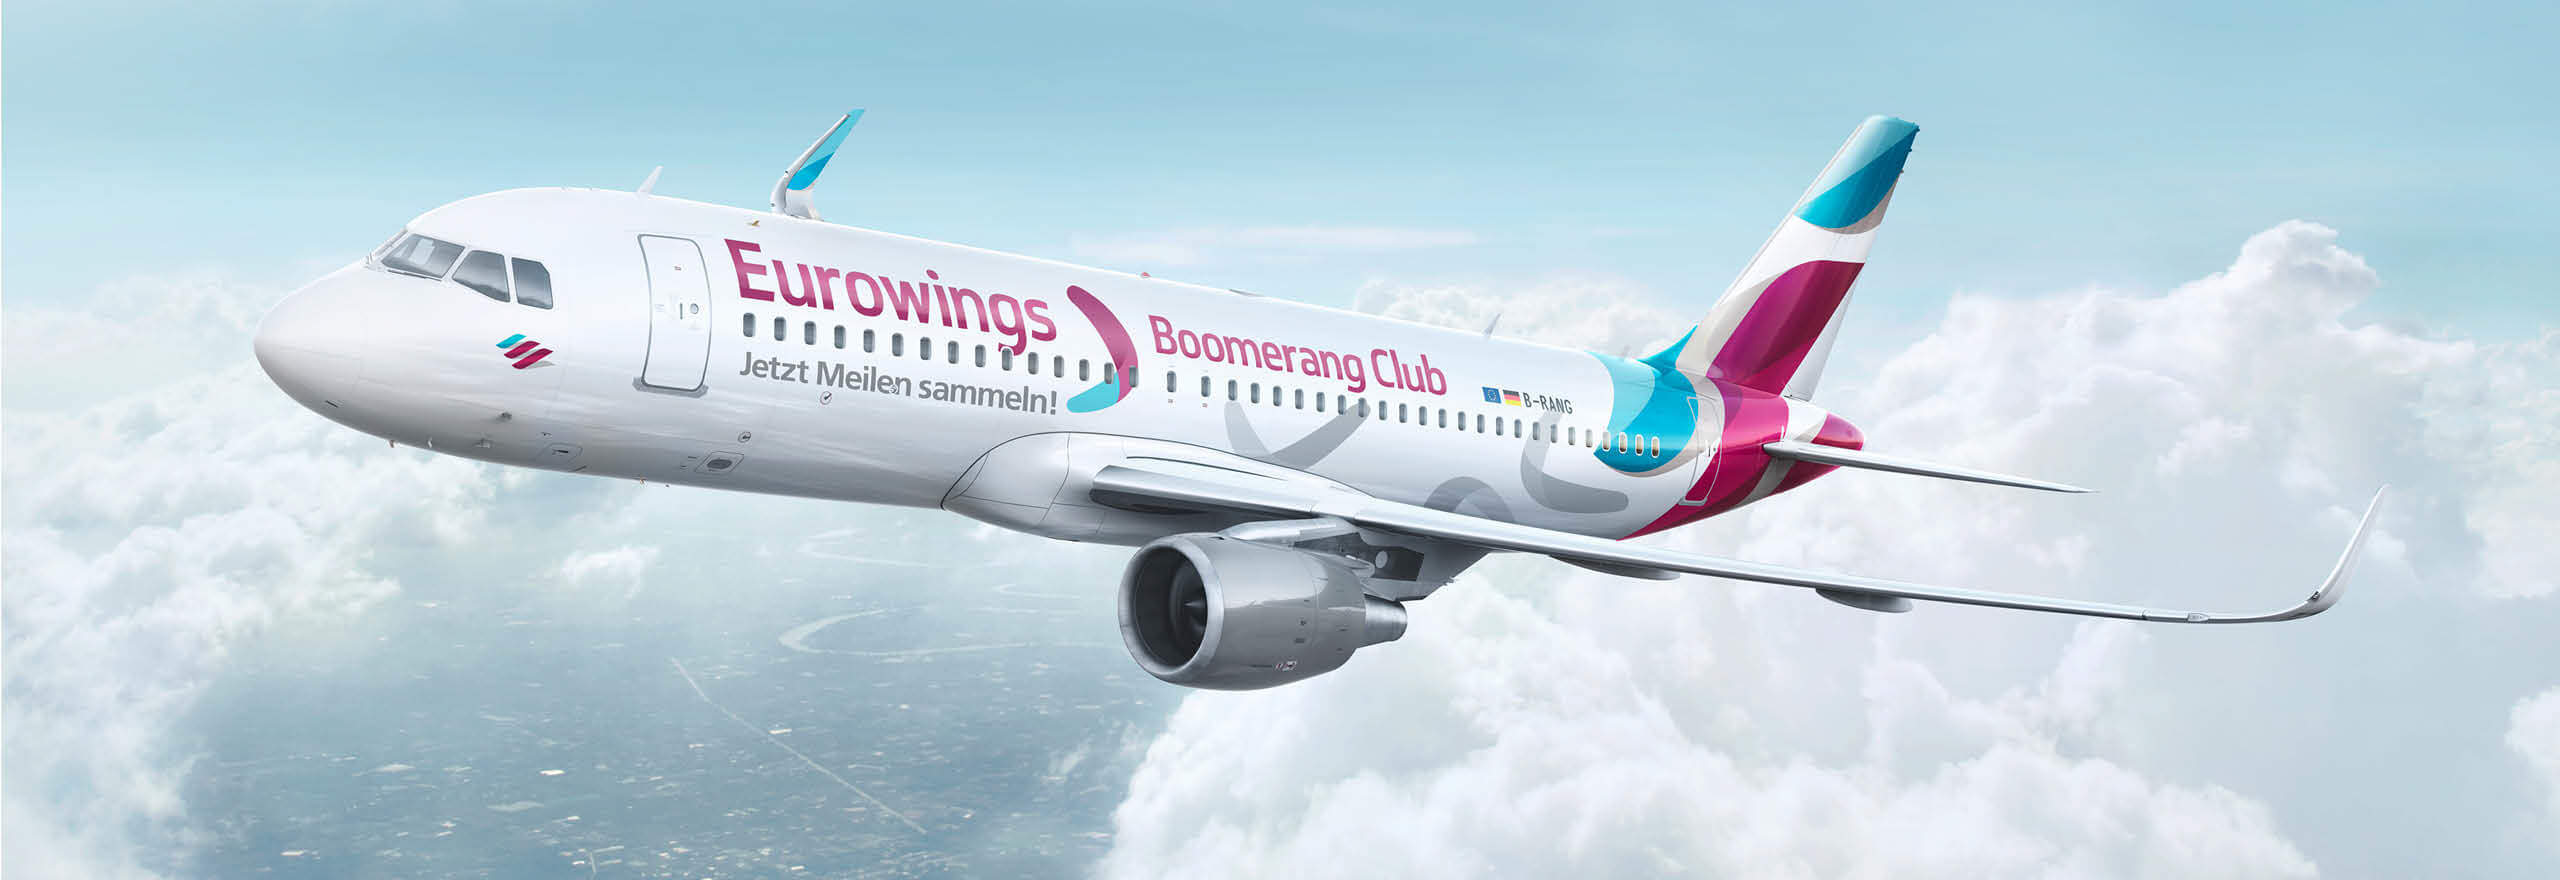 Eurowings Billig Tickets